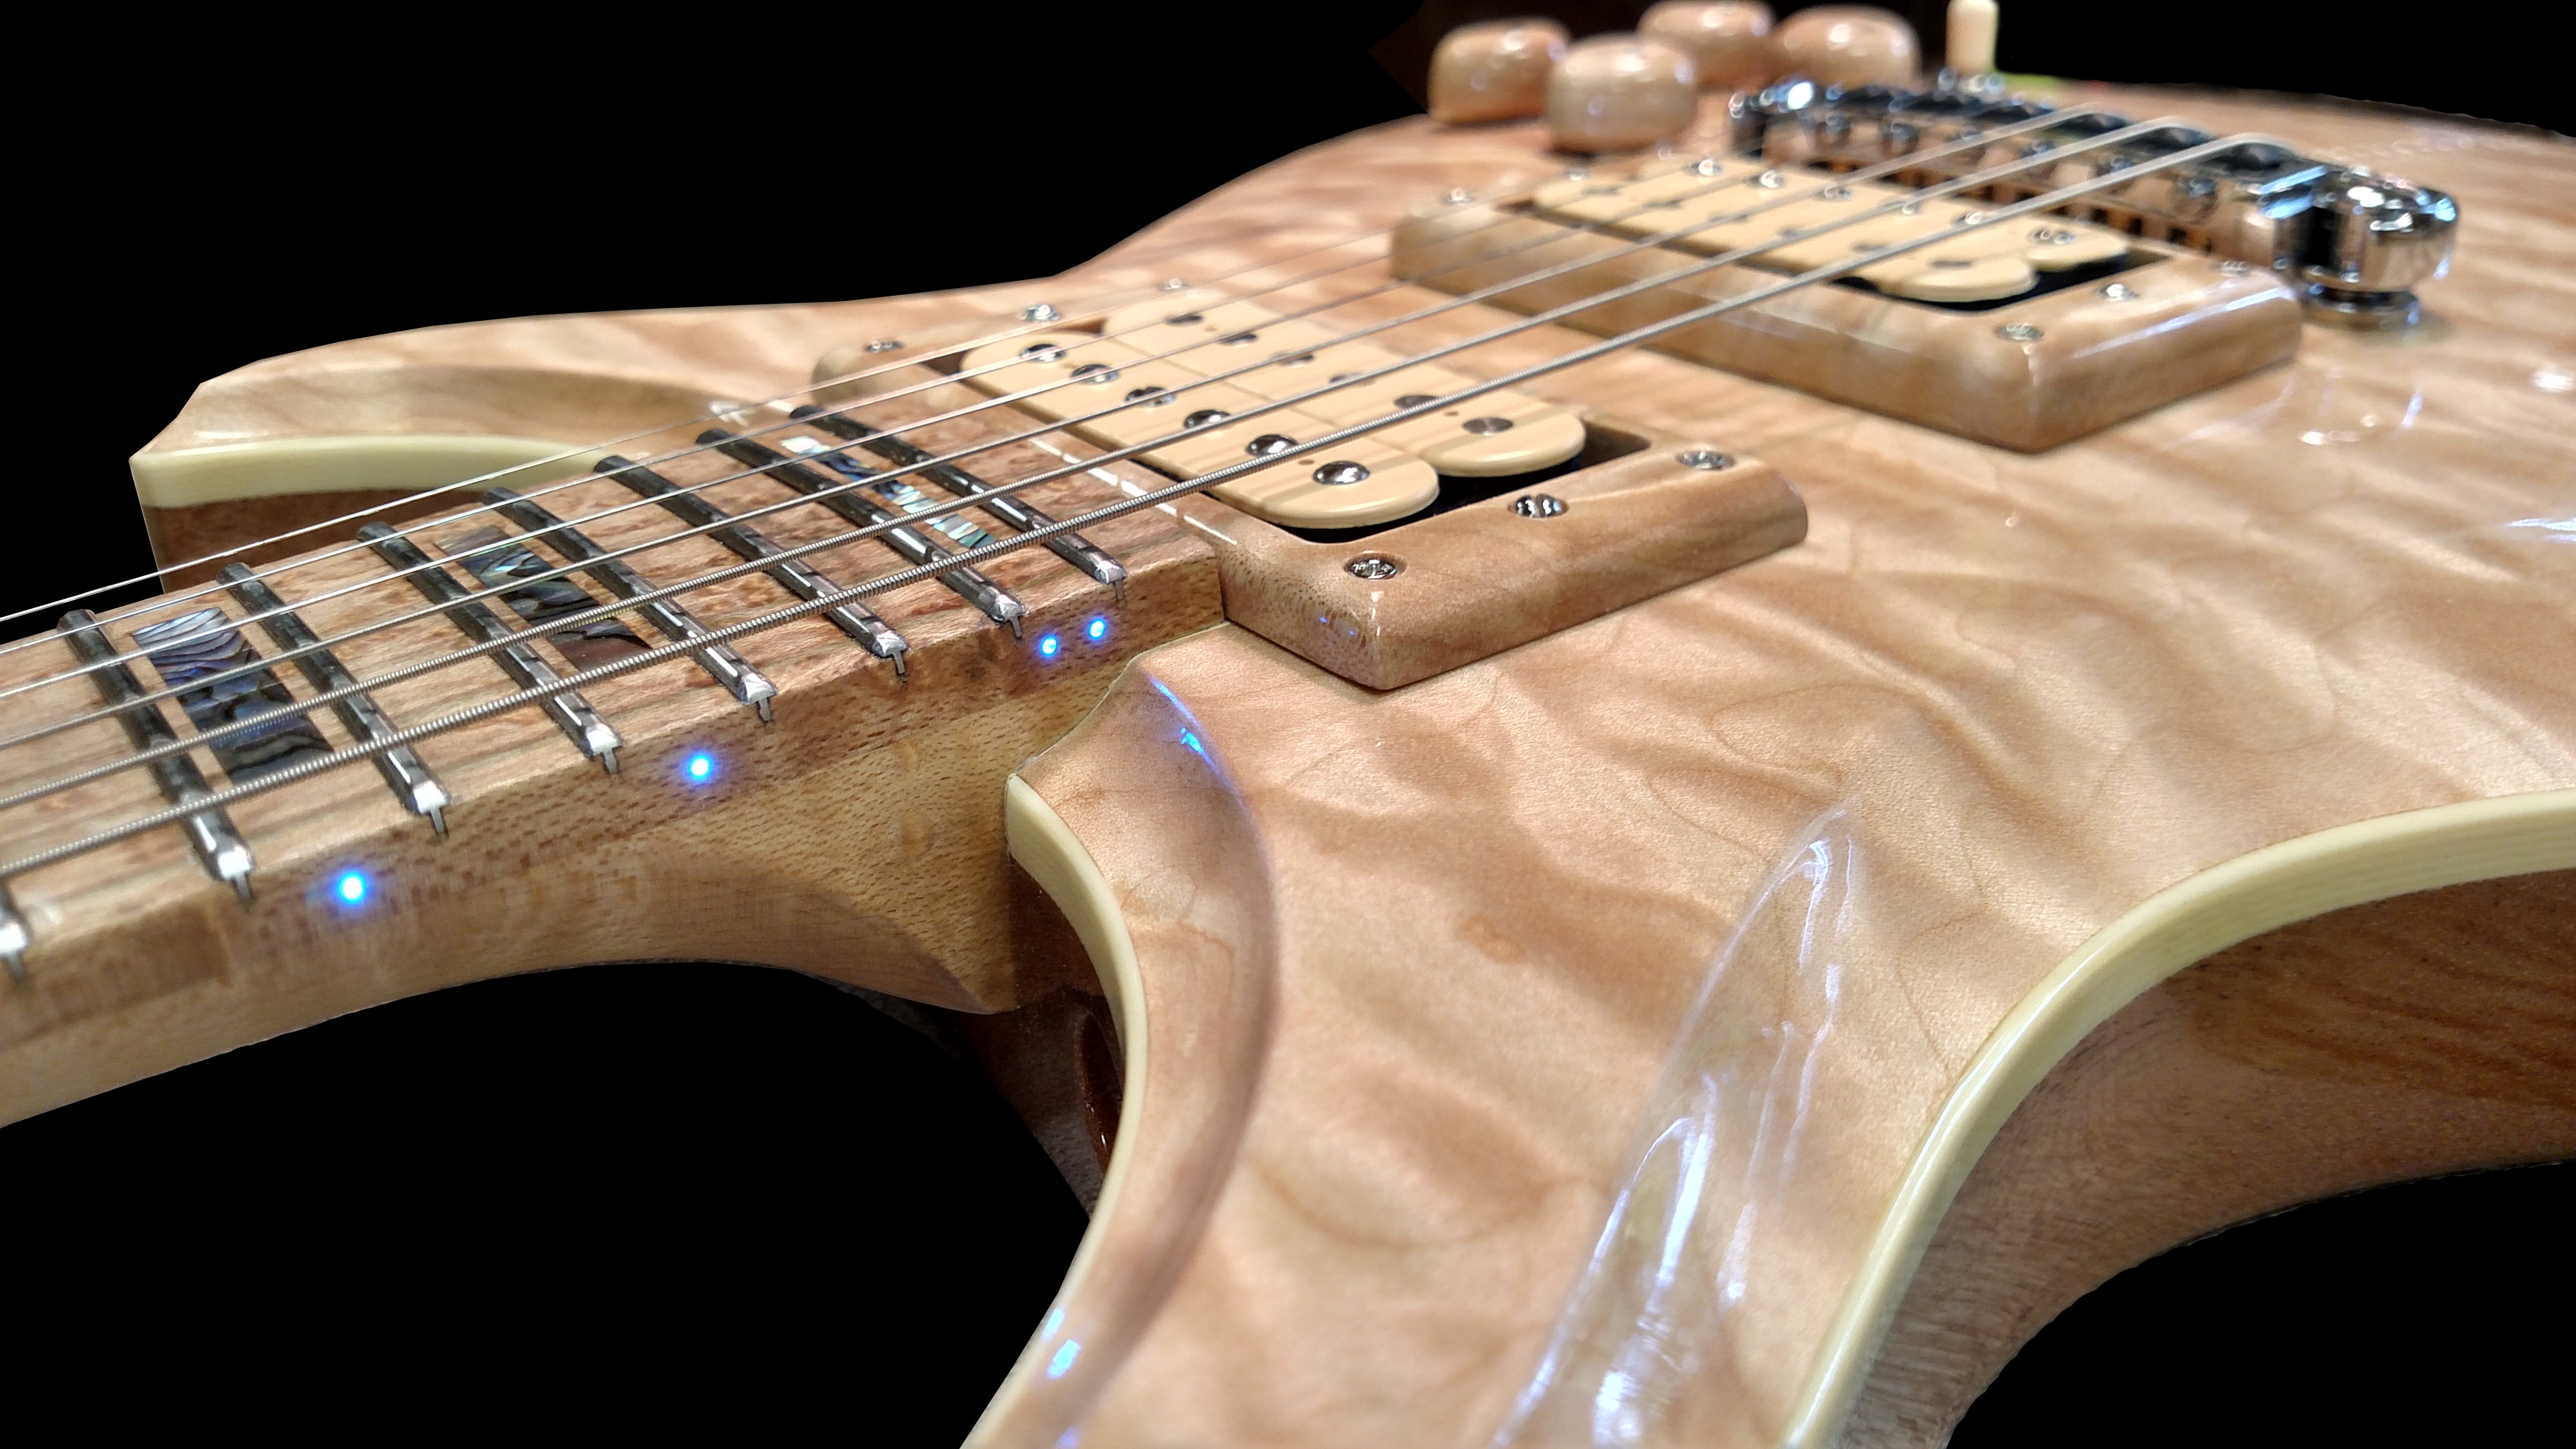 Custom special ordered fiber optic guitar. Hand crafted work by King Blossom Guitar